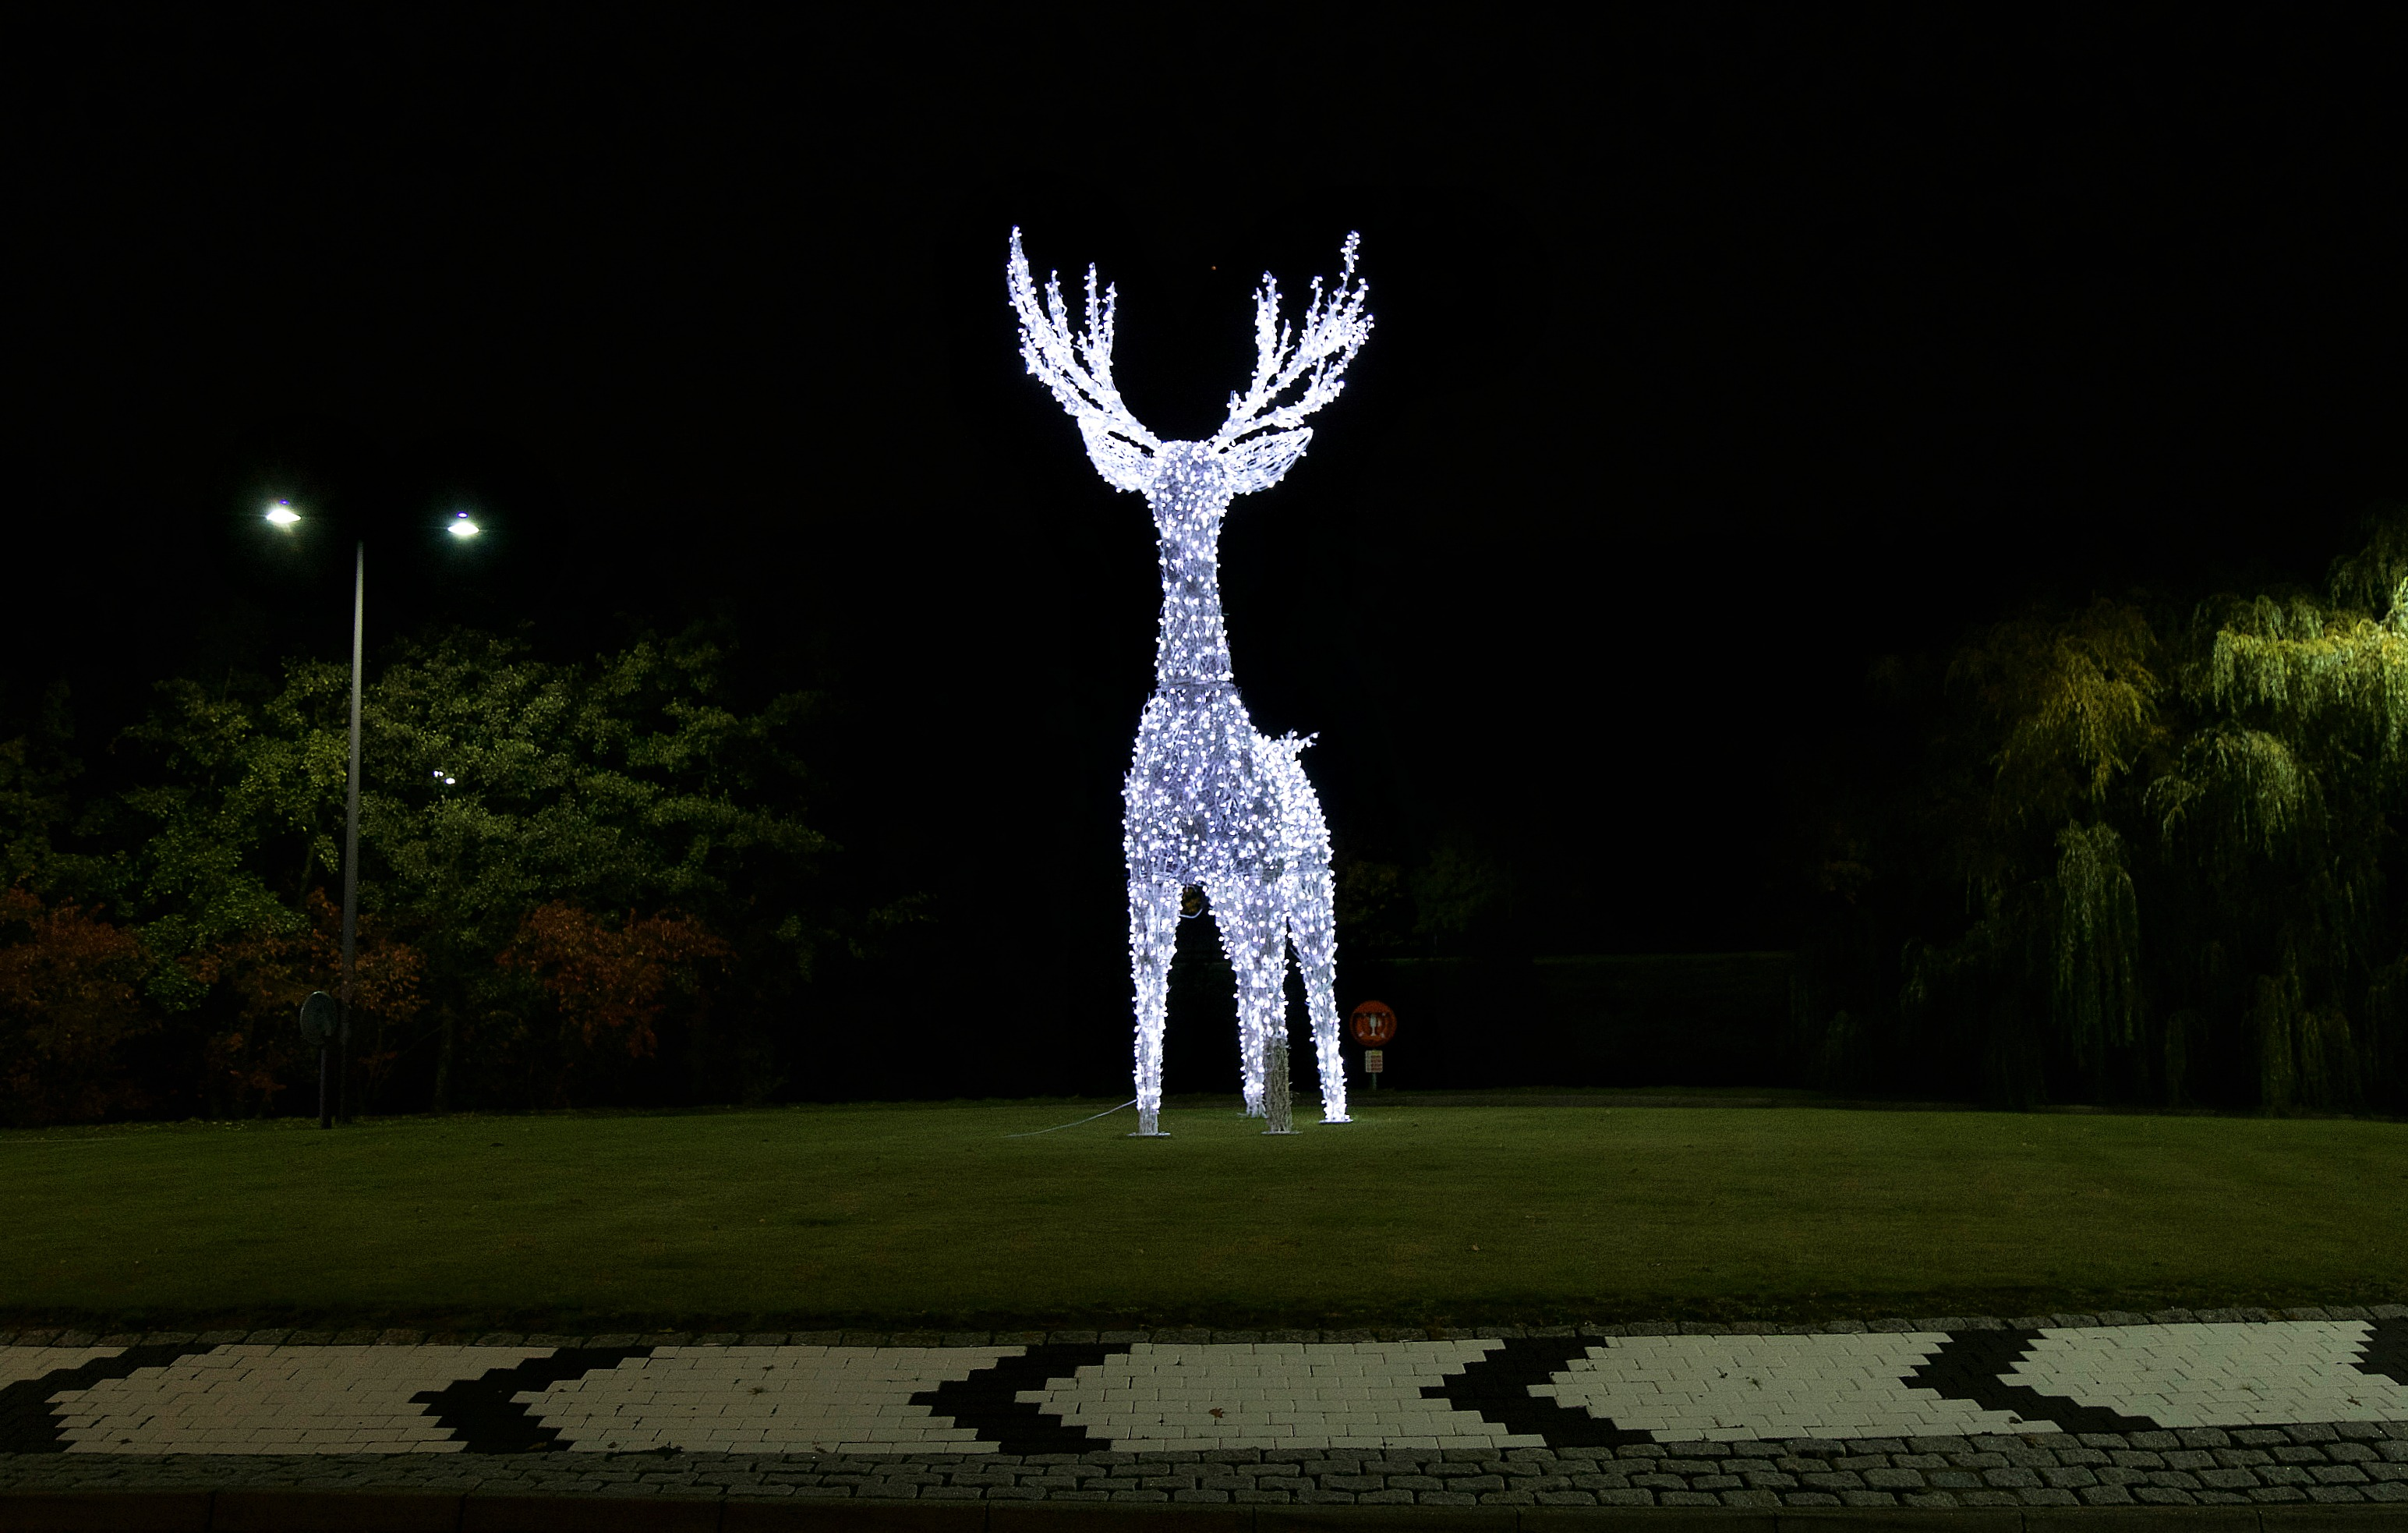 Light-up Reindeer Decoration